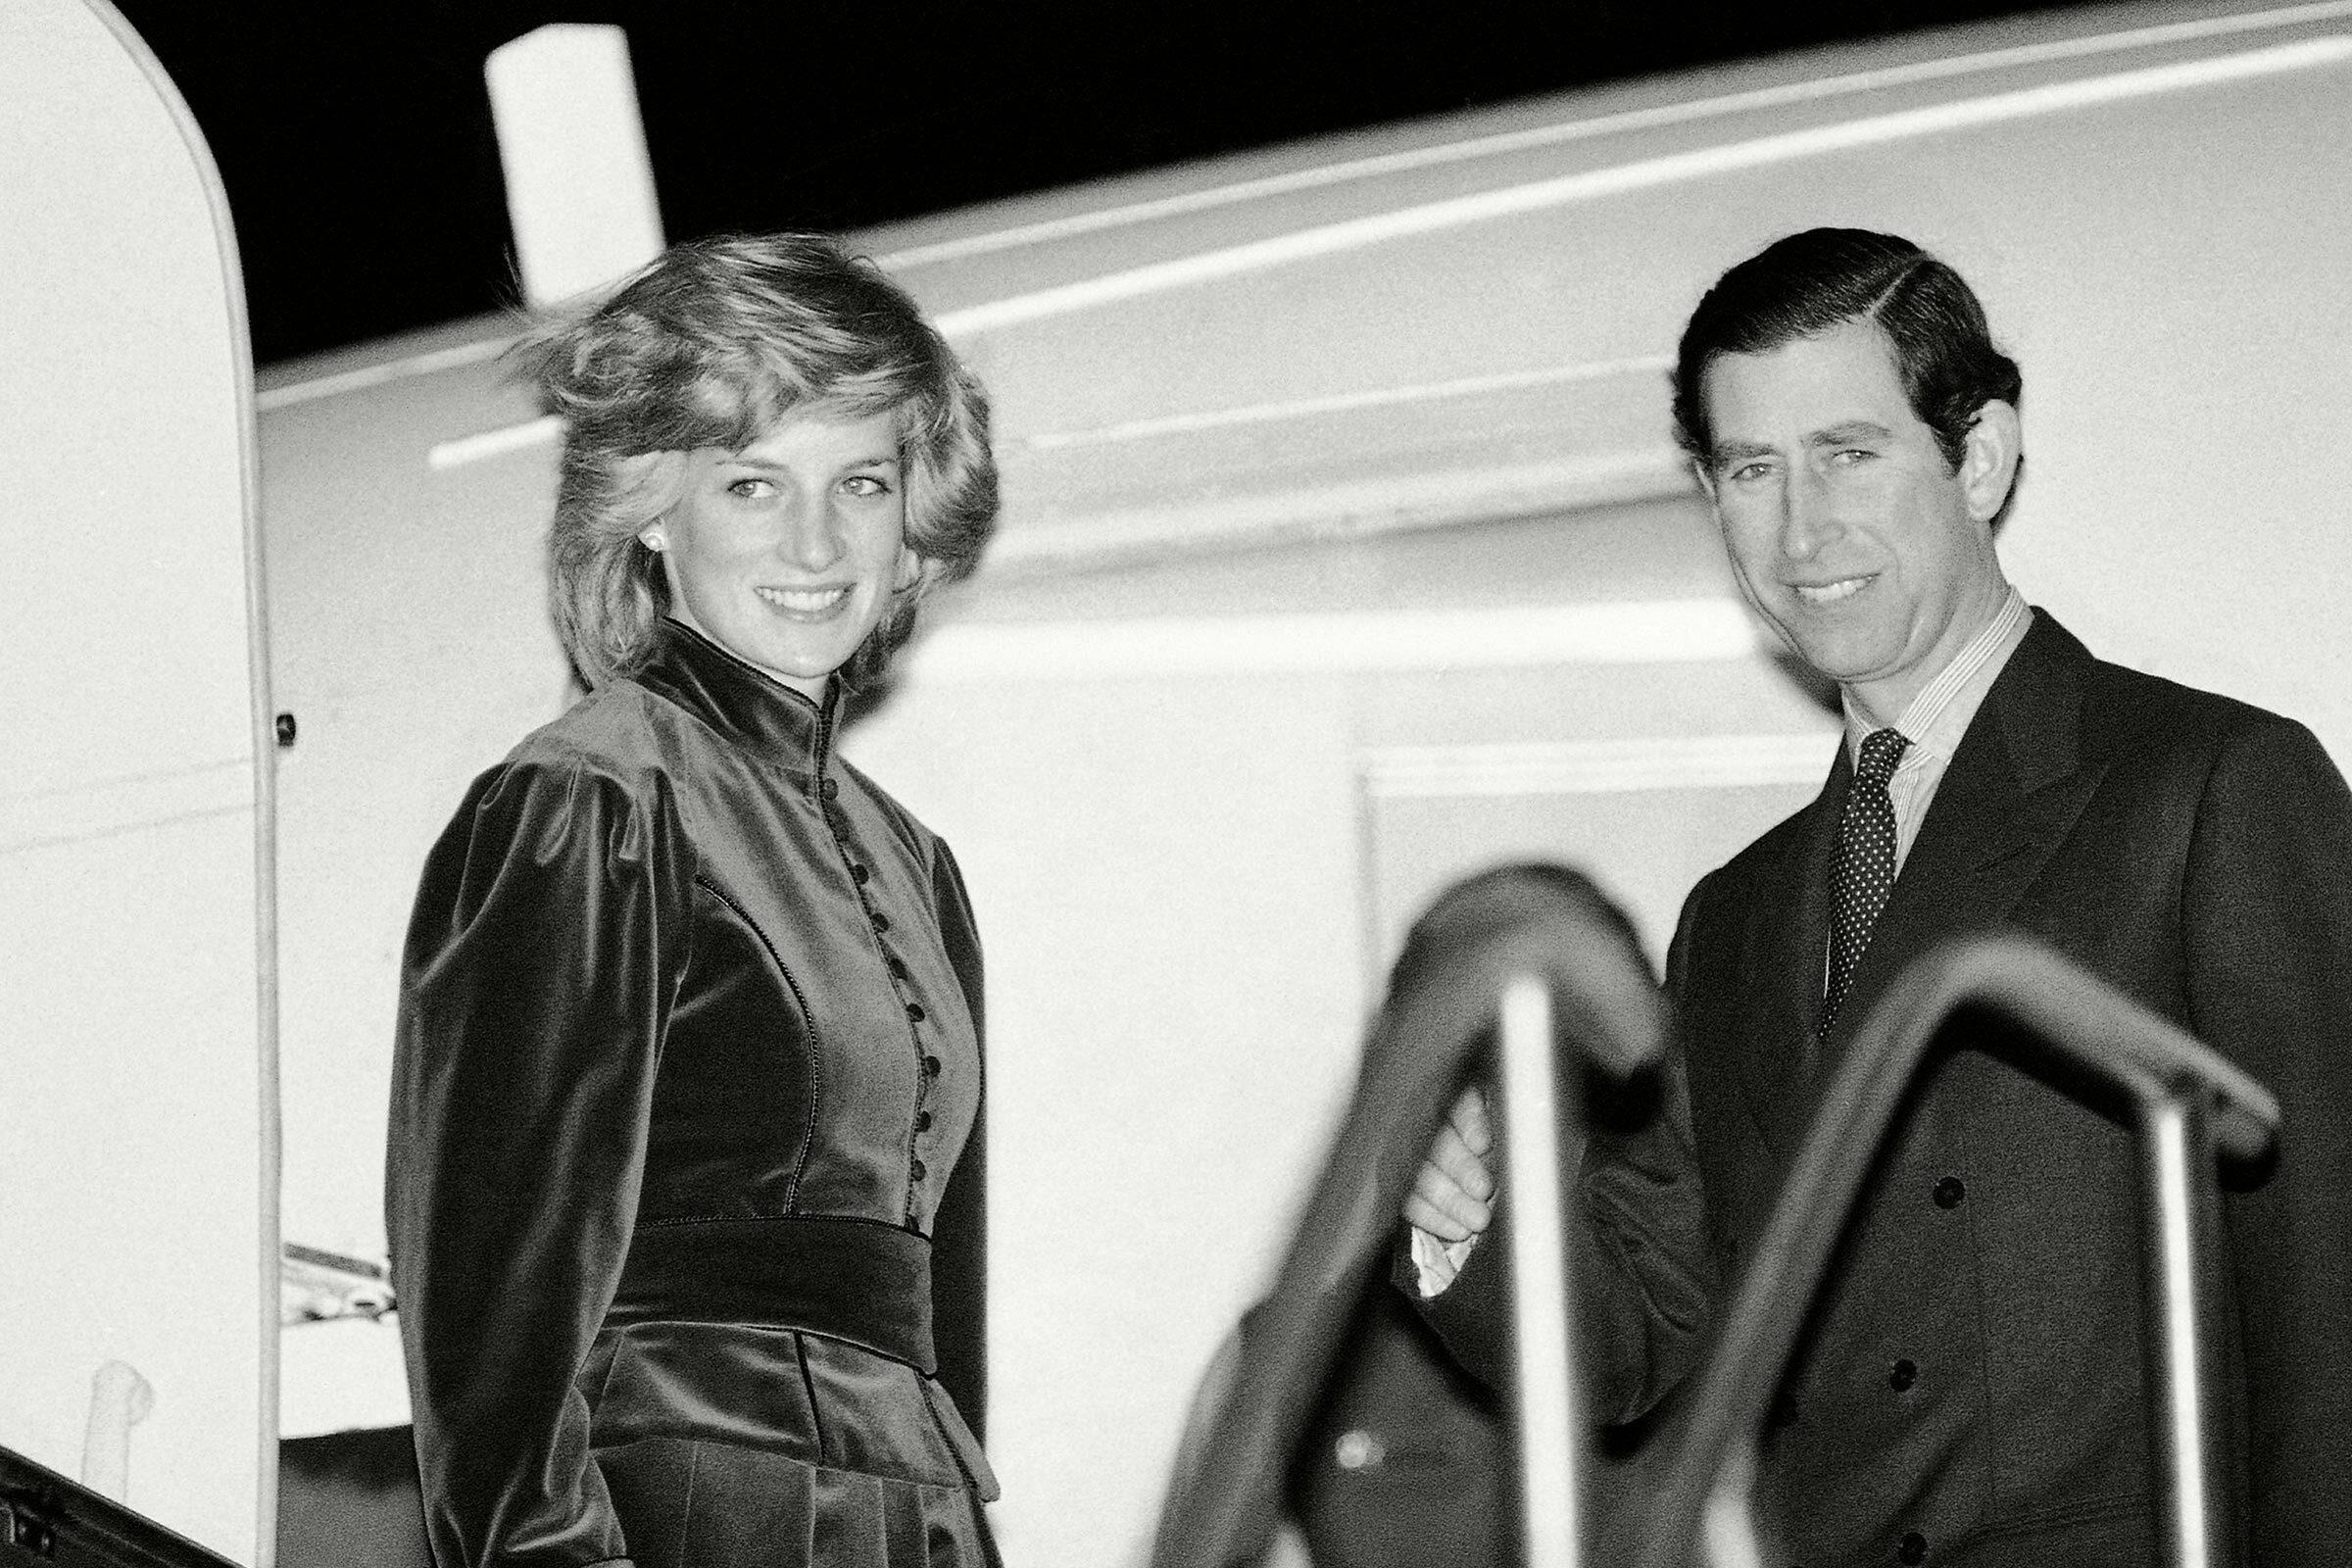 Charles and Diana boarding a flight.